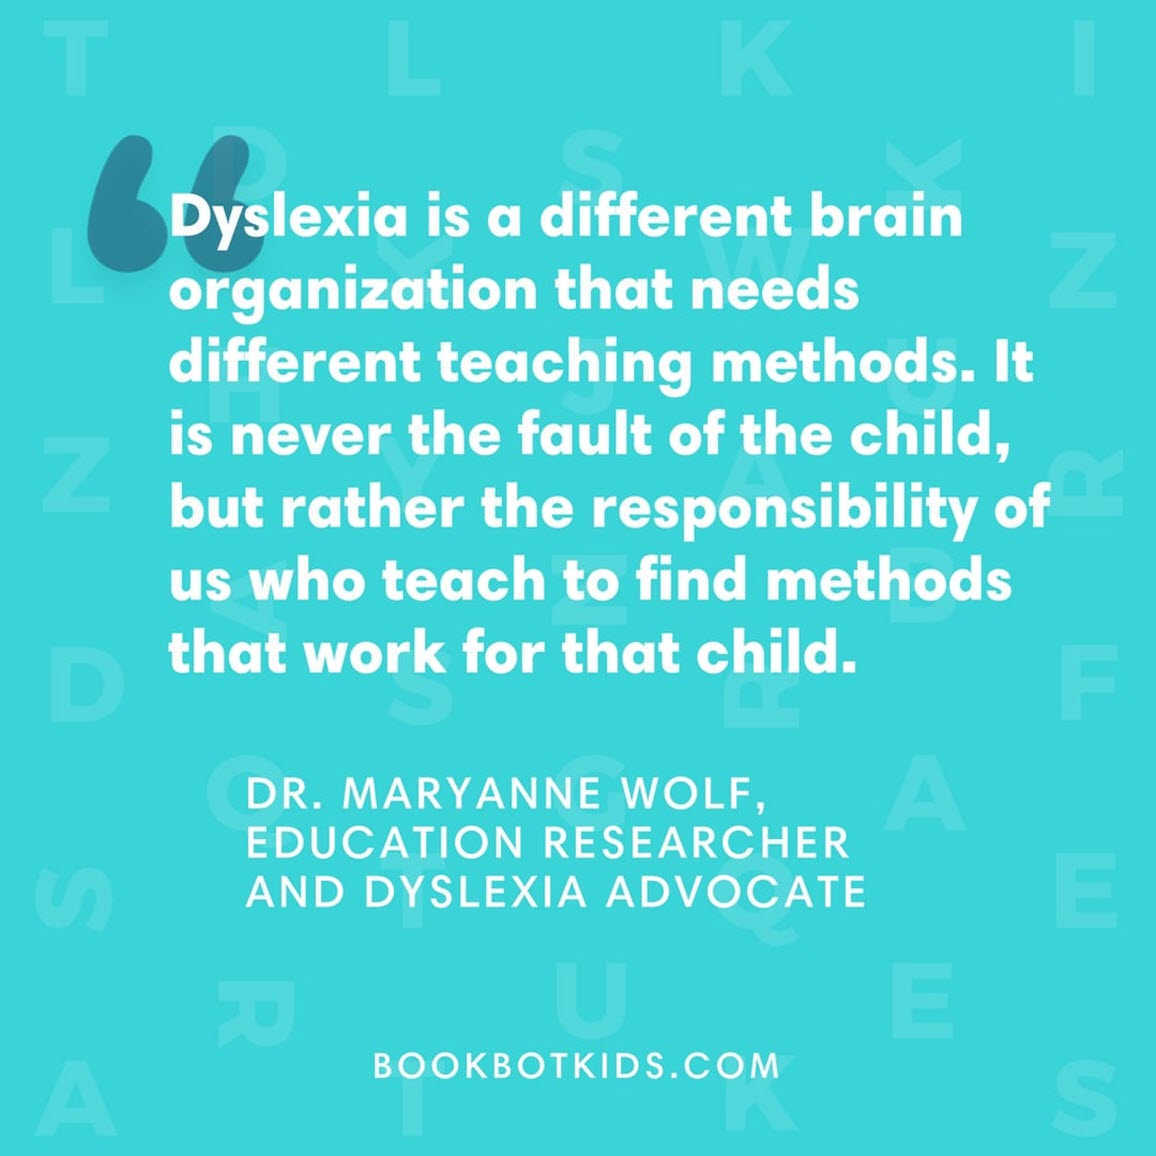 Dyslexia is a different brain organisation that needs different coaching methods. It is never the fault of the child, but rather the responsibility of us who teach to find methods that work for that child. – Dr. Maryanne Wolf, Education Researcher and Dyslexia Advocate